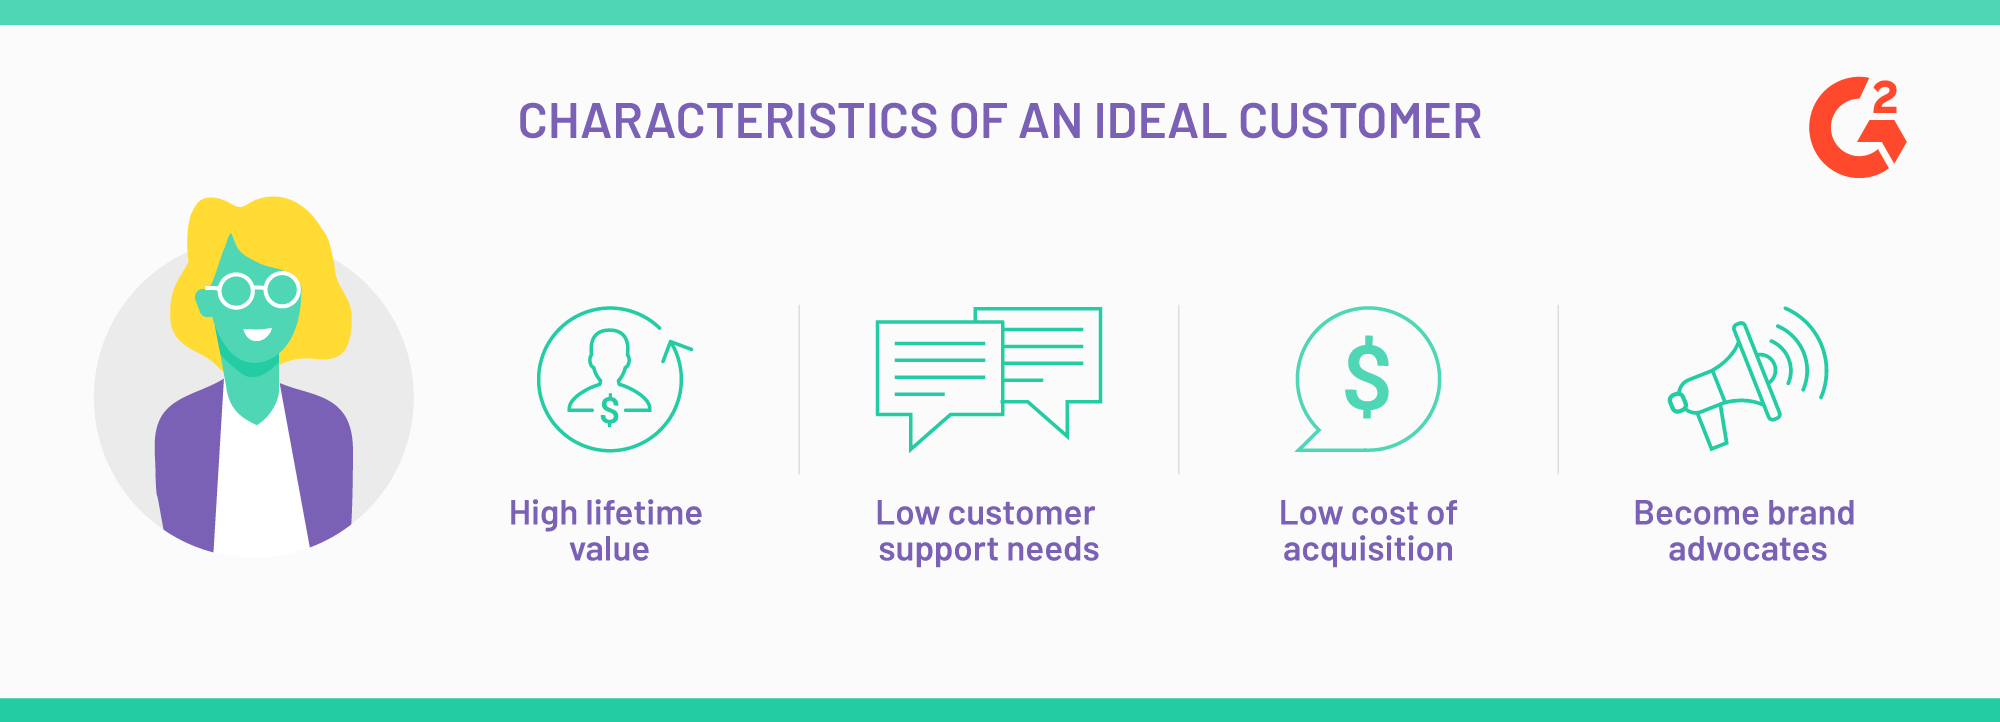 what makes a good customer?